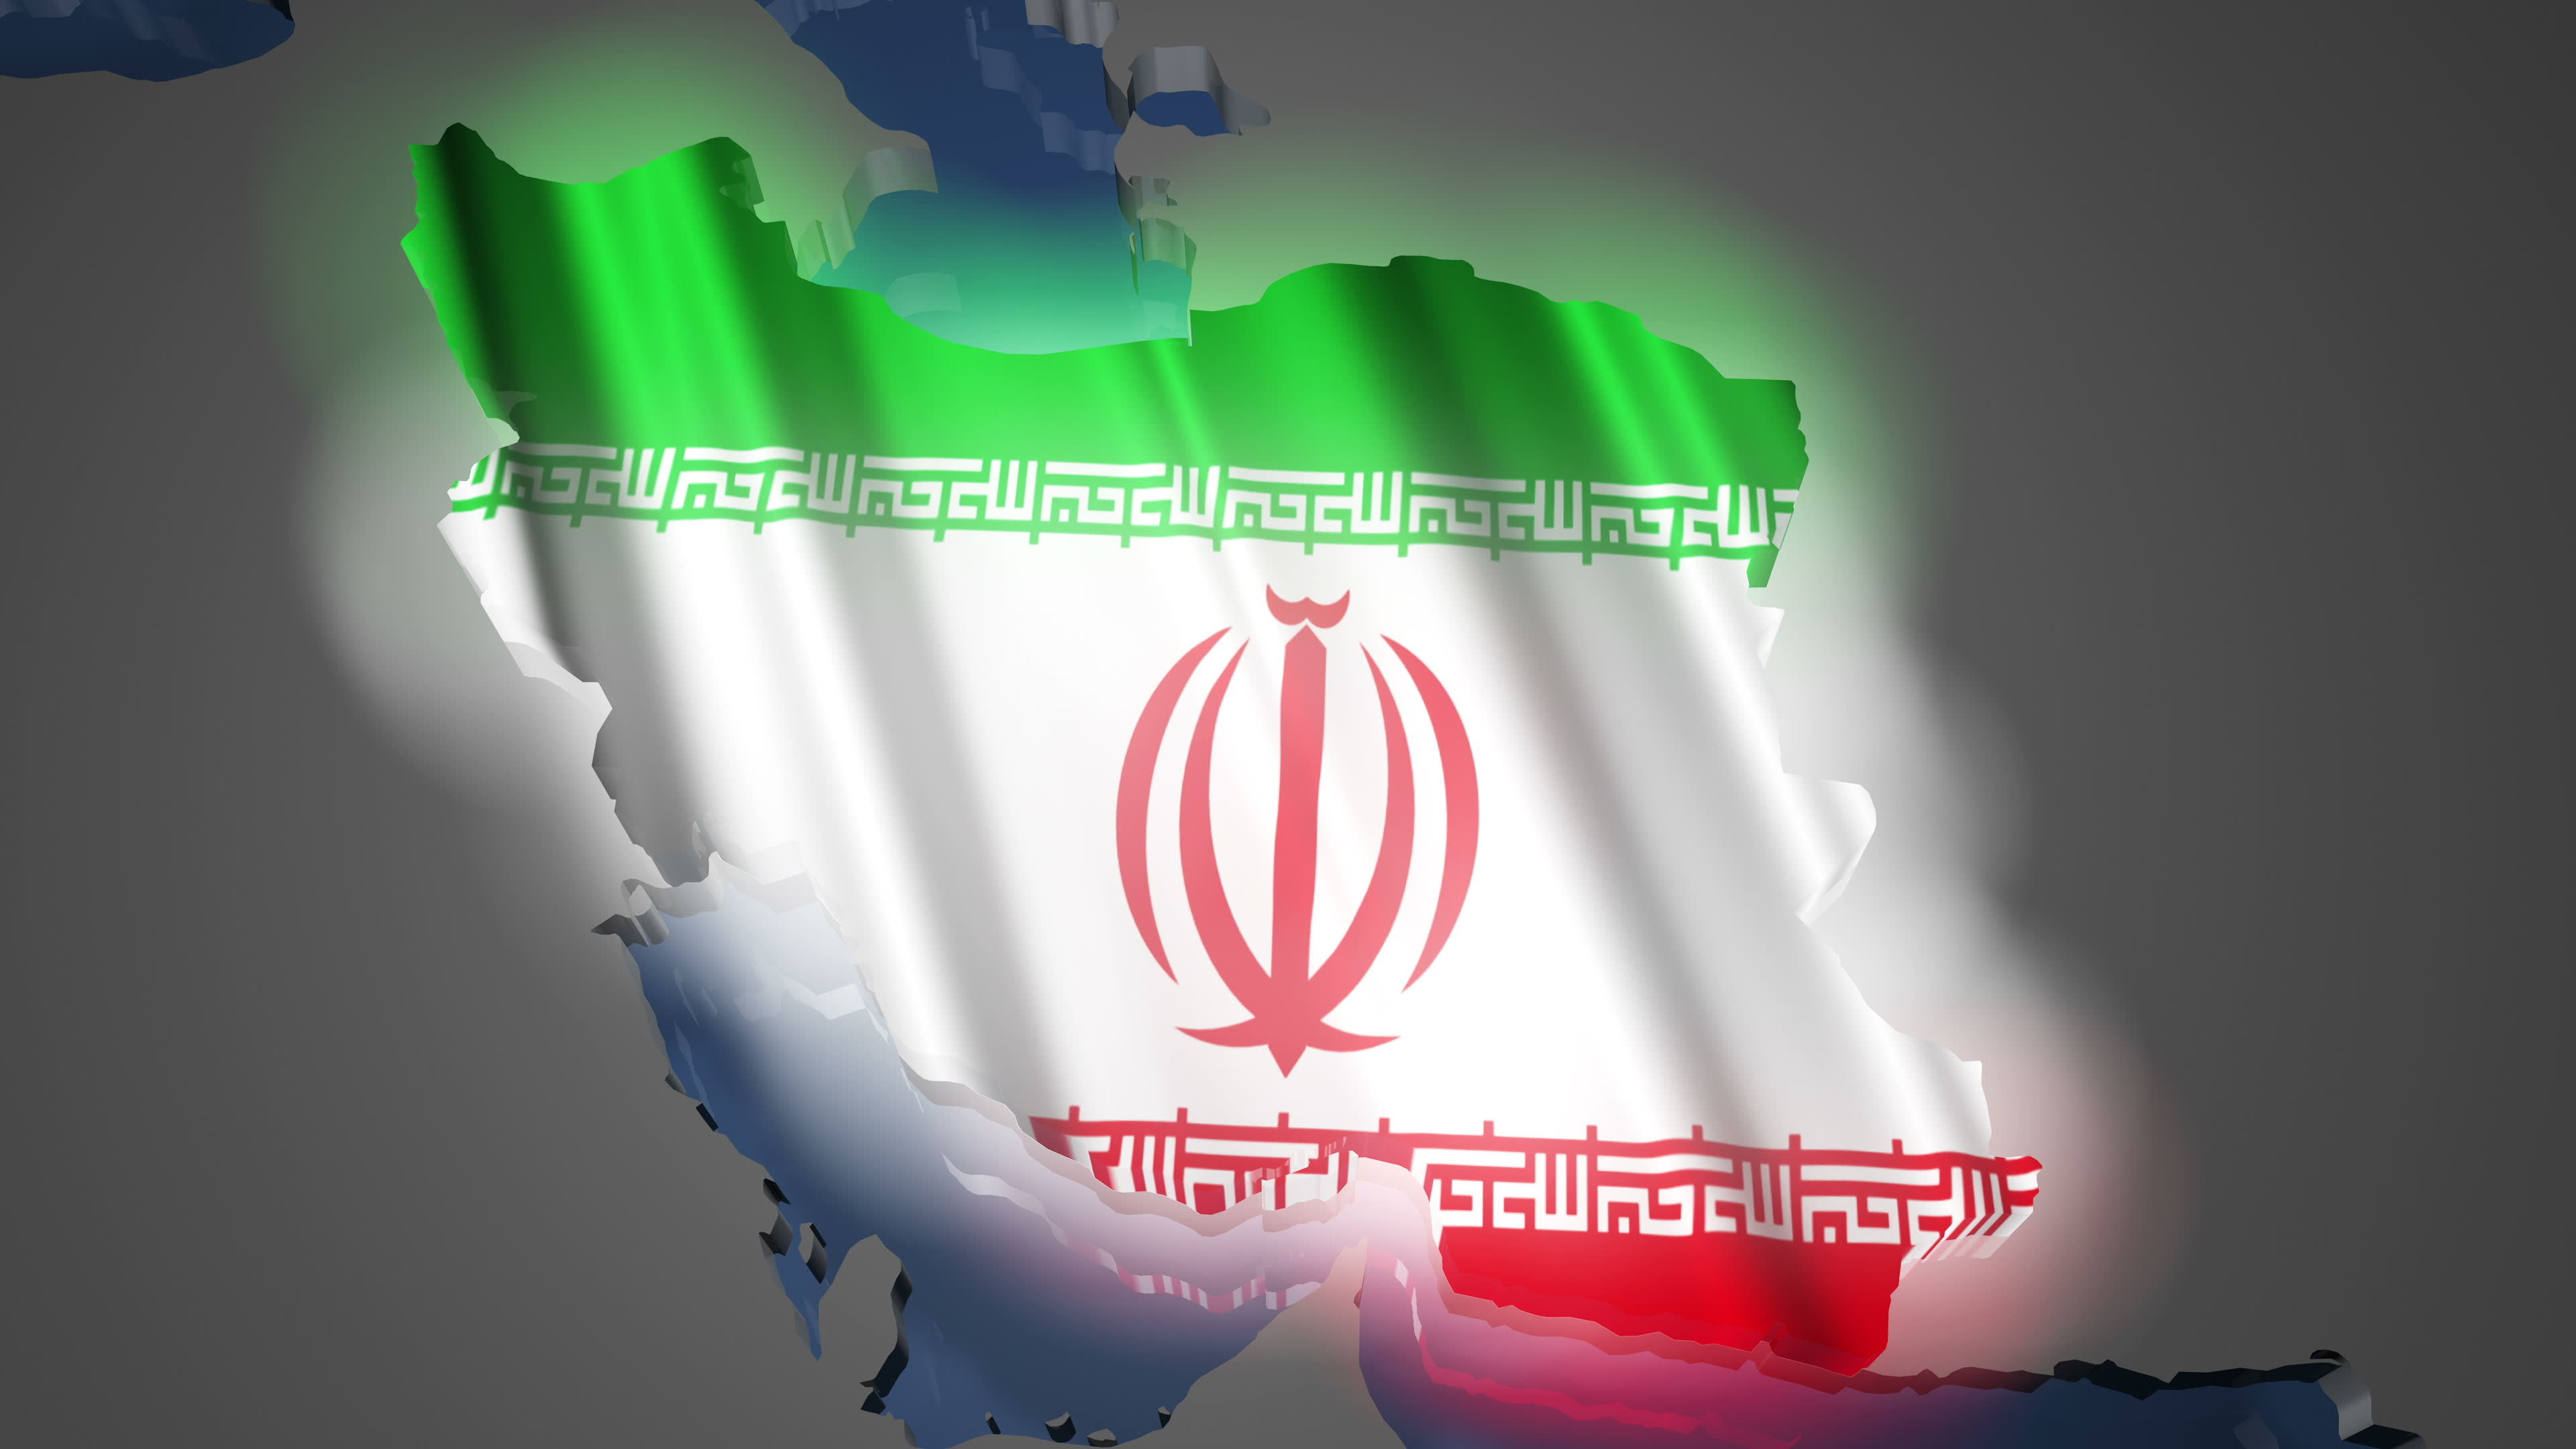 <!--:en-->3 Iranians Poised to Take Over Europe in 2014-15<!--:-->